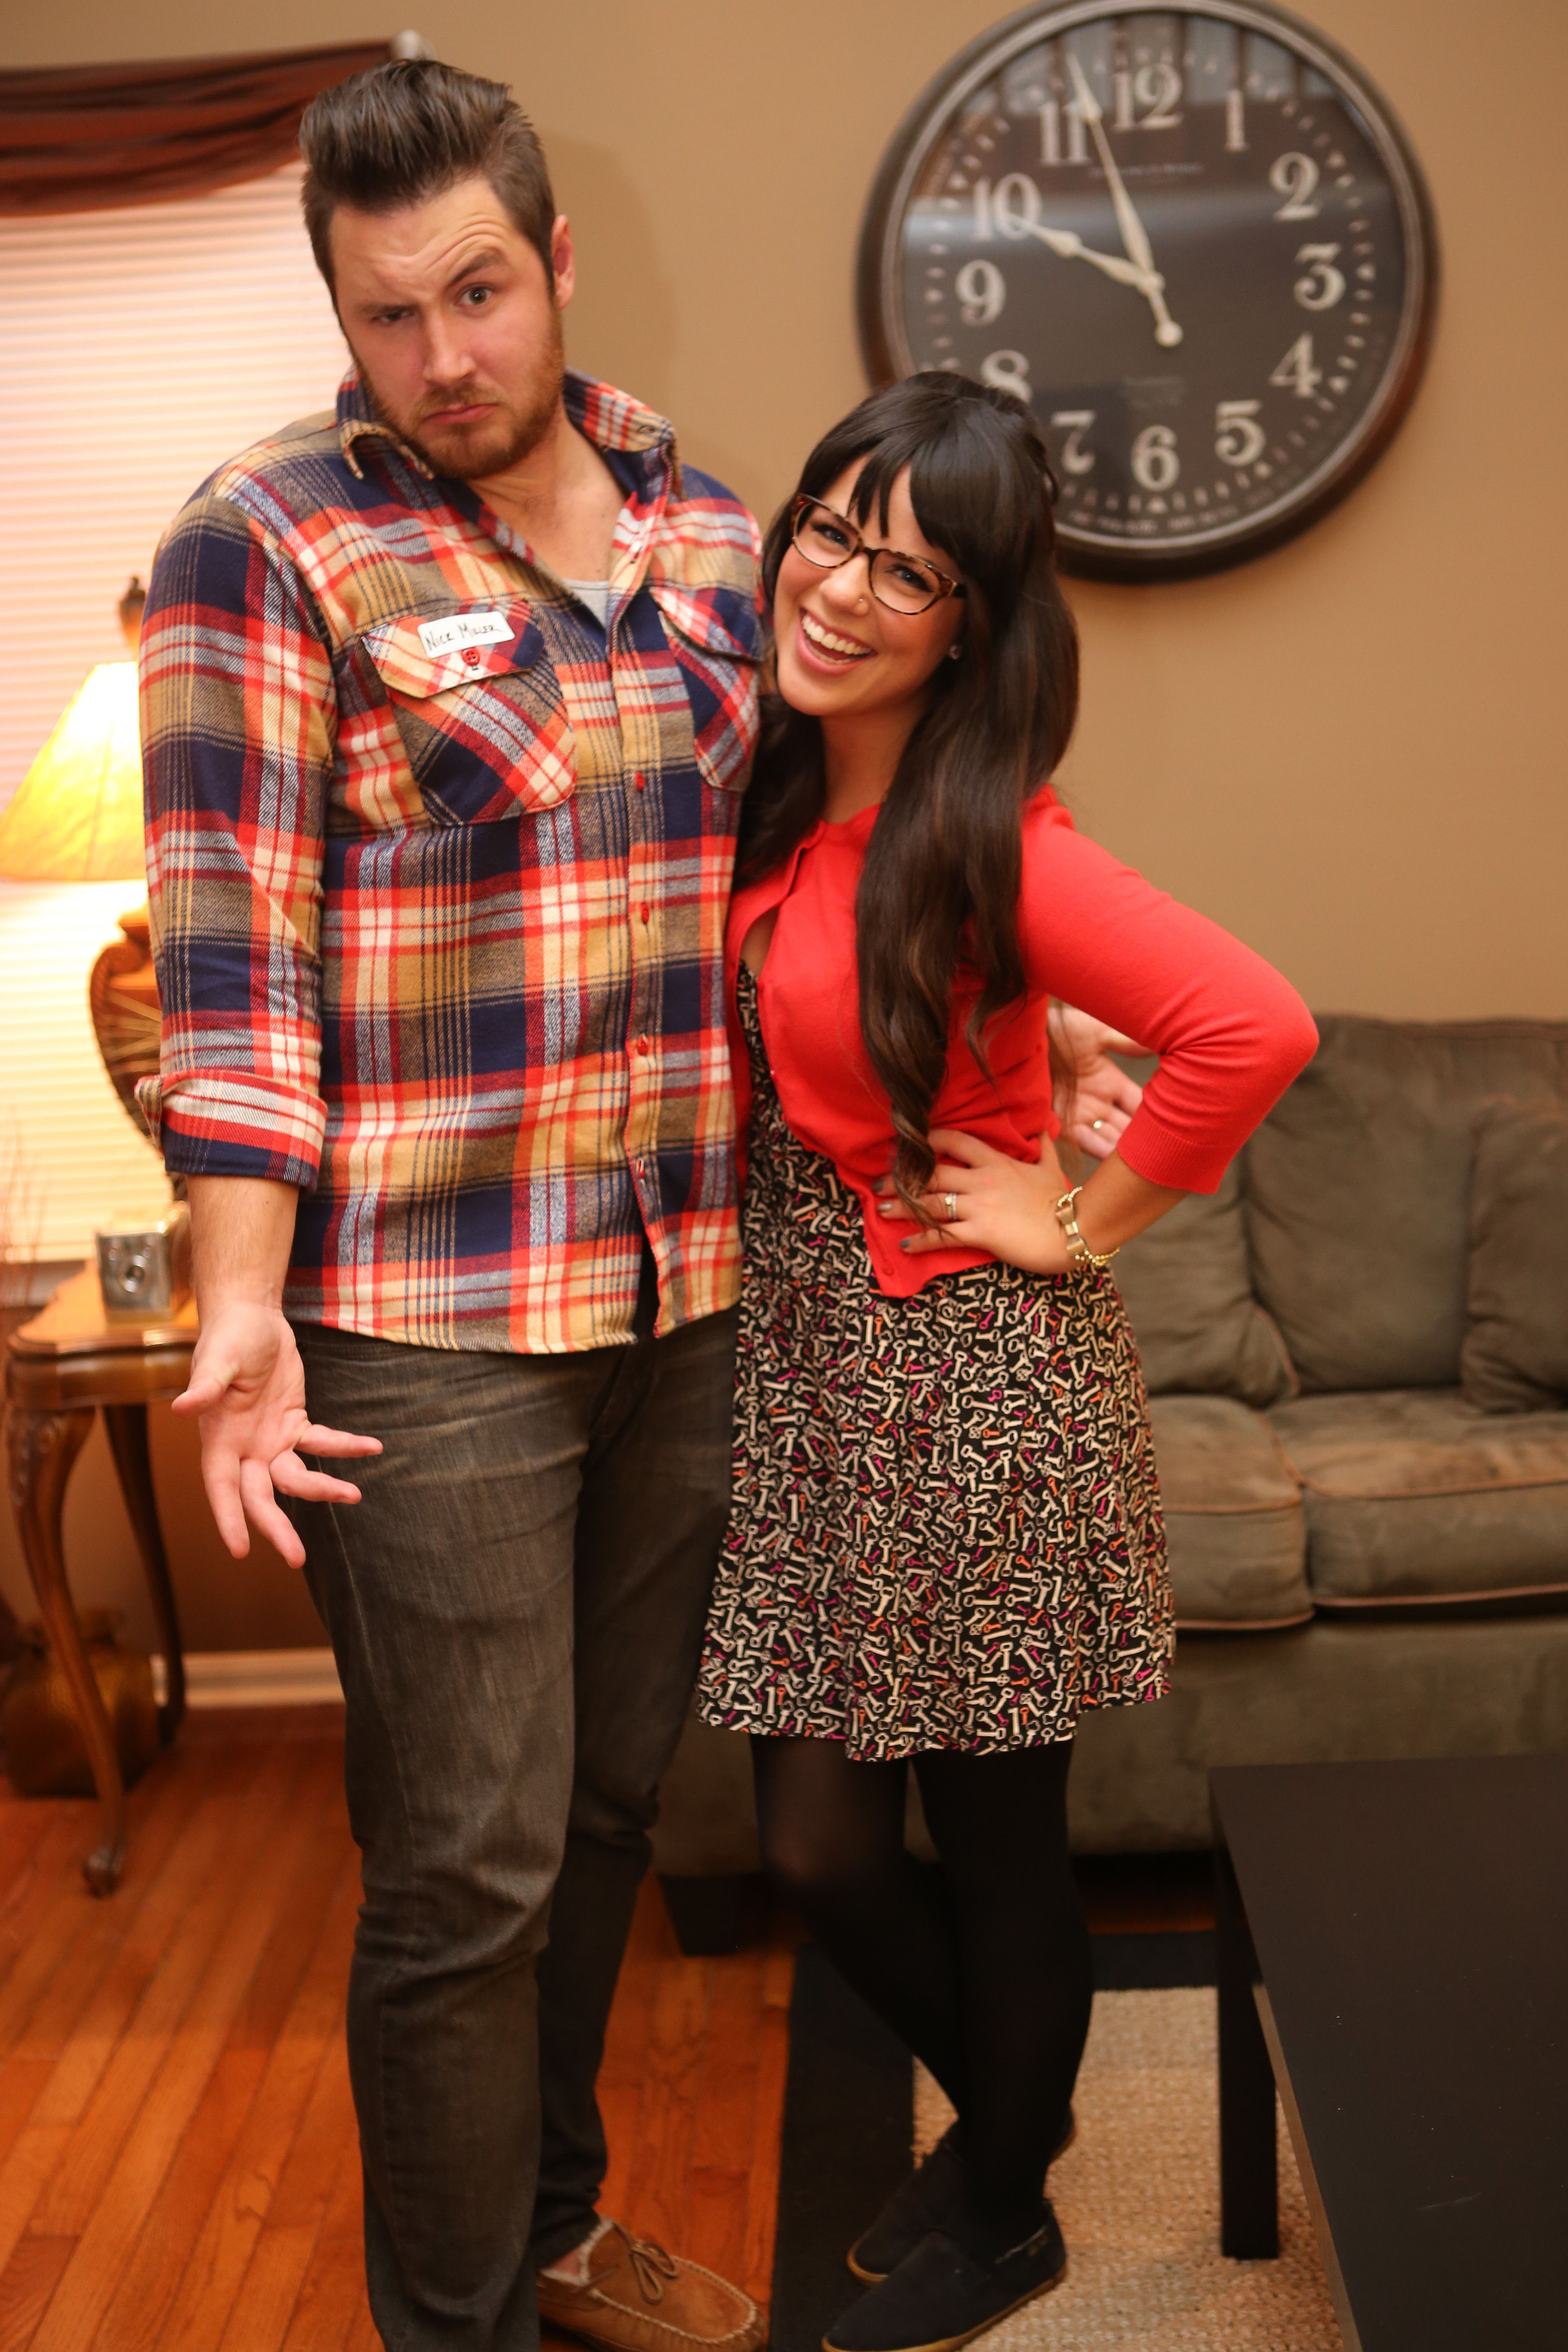 Couples Halloween Costume: Jess and Nick from New Girl. Zoe ...